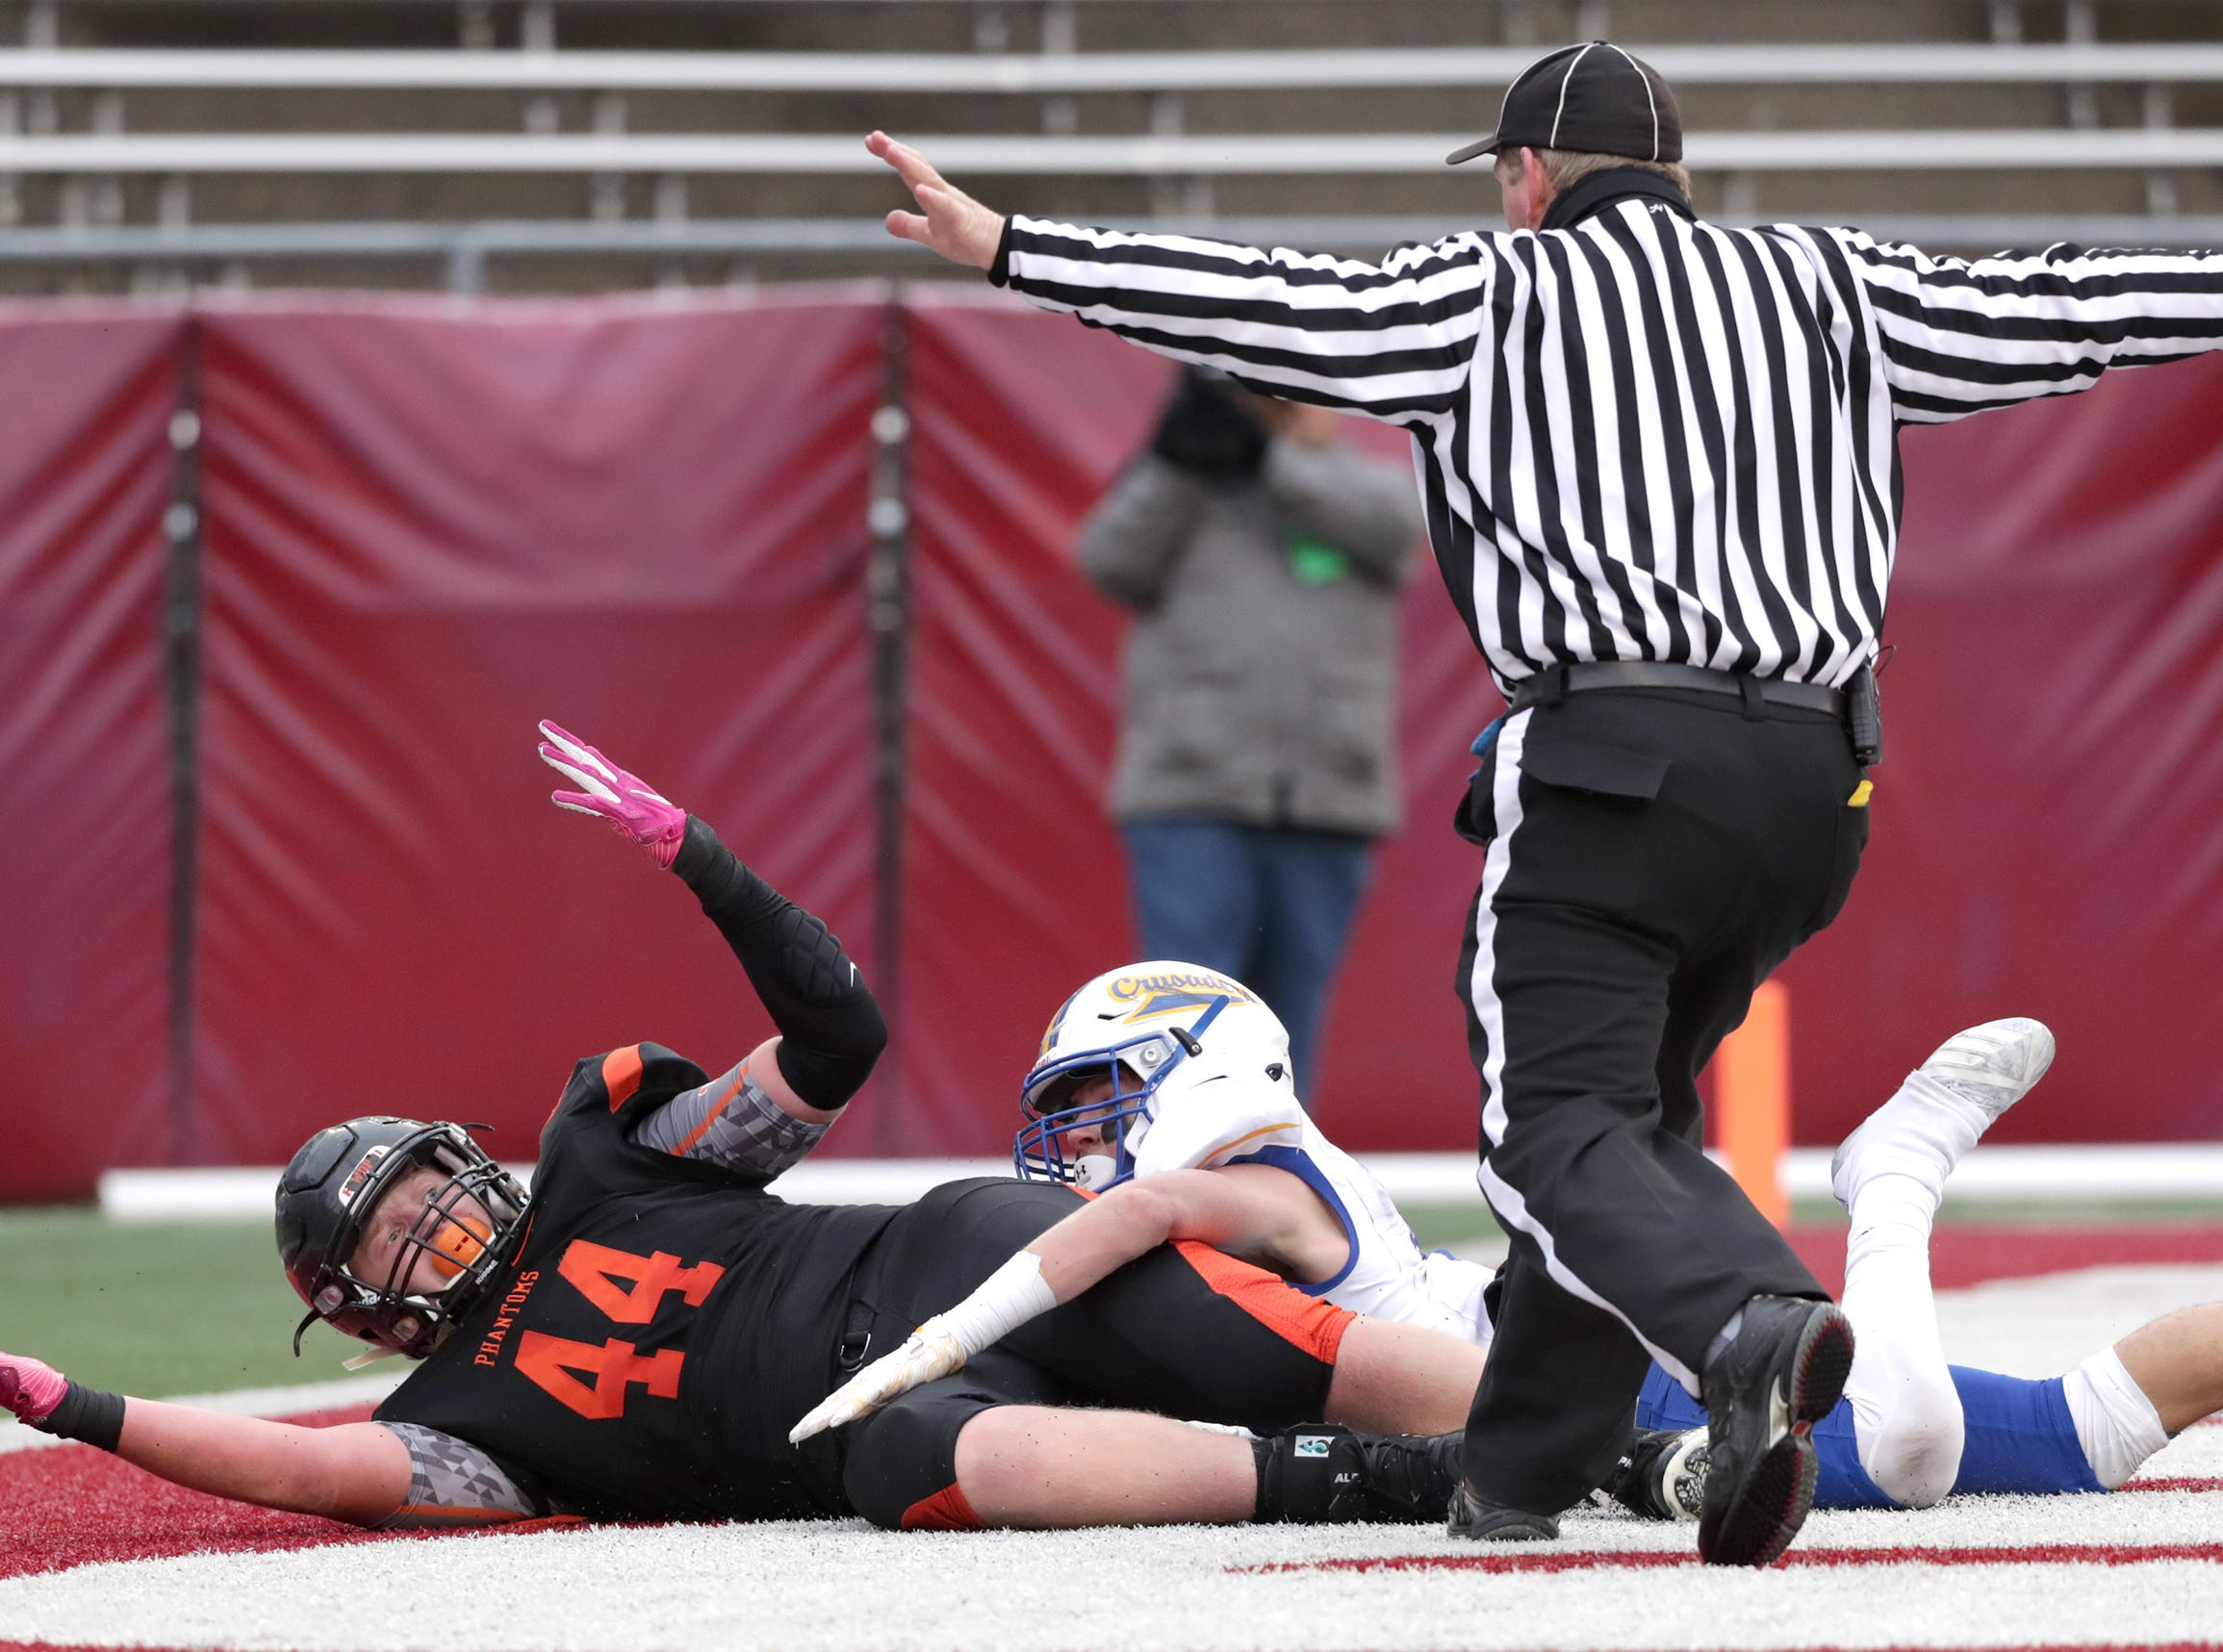 West De Pere High School's #44 Jake Karchinski looks for a pass interference cal in the end zone against Catholic Memorial High School's #10 Matthew Schultz during the WIAA Division  3 state championship football game on Friday, November 16, 2018, at Camp Randall in Madison, Wis. Wm. Glasheen/USA TODAY NETWORK-Wisconsin.